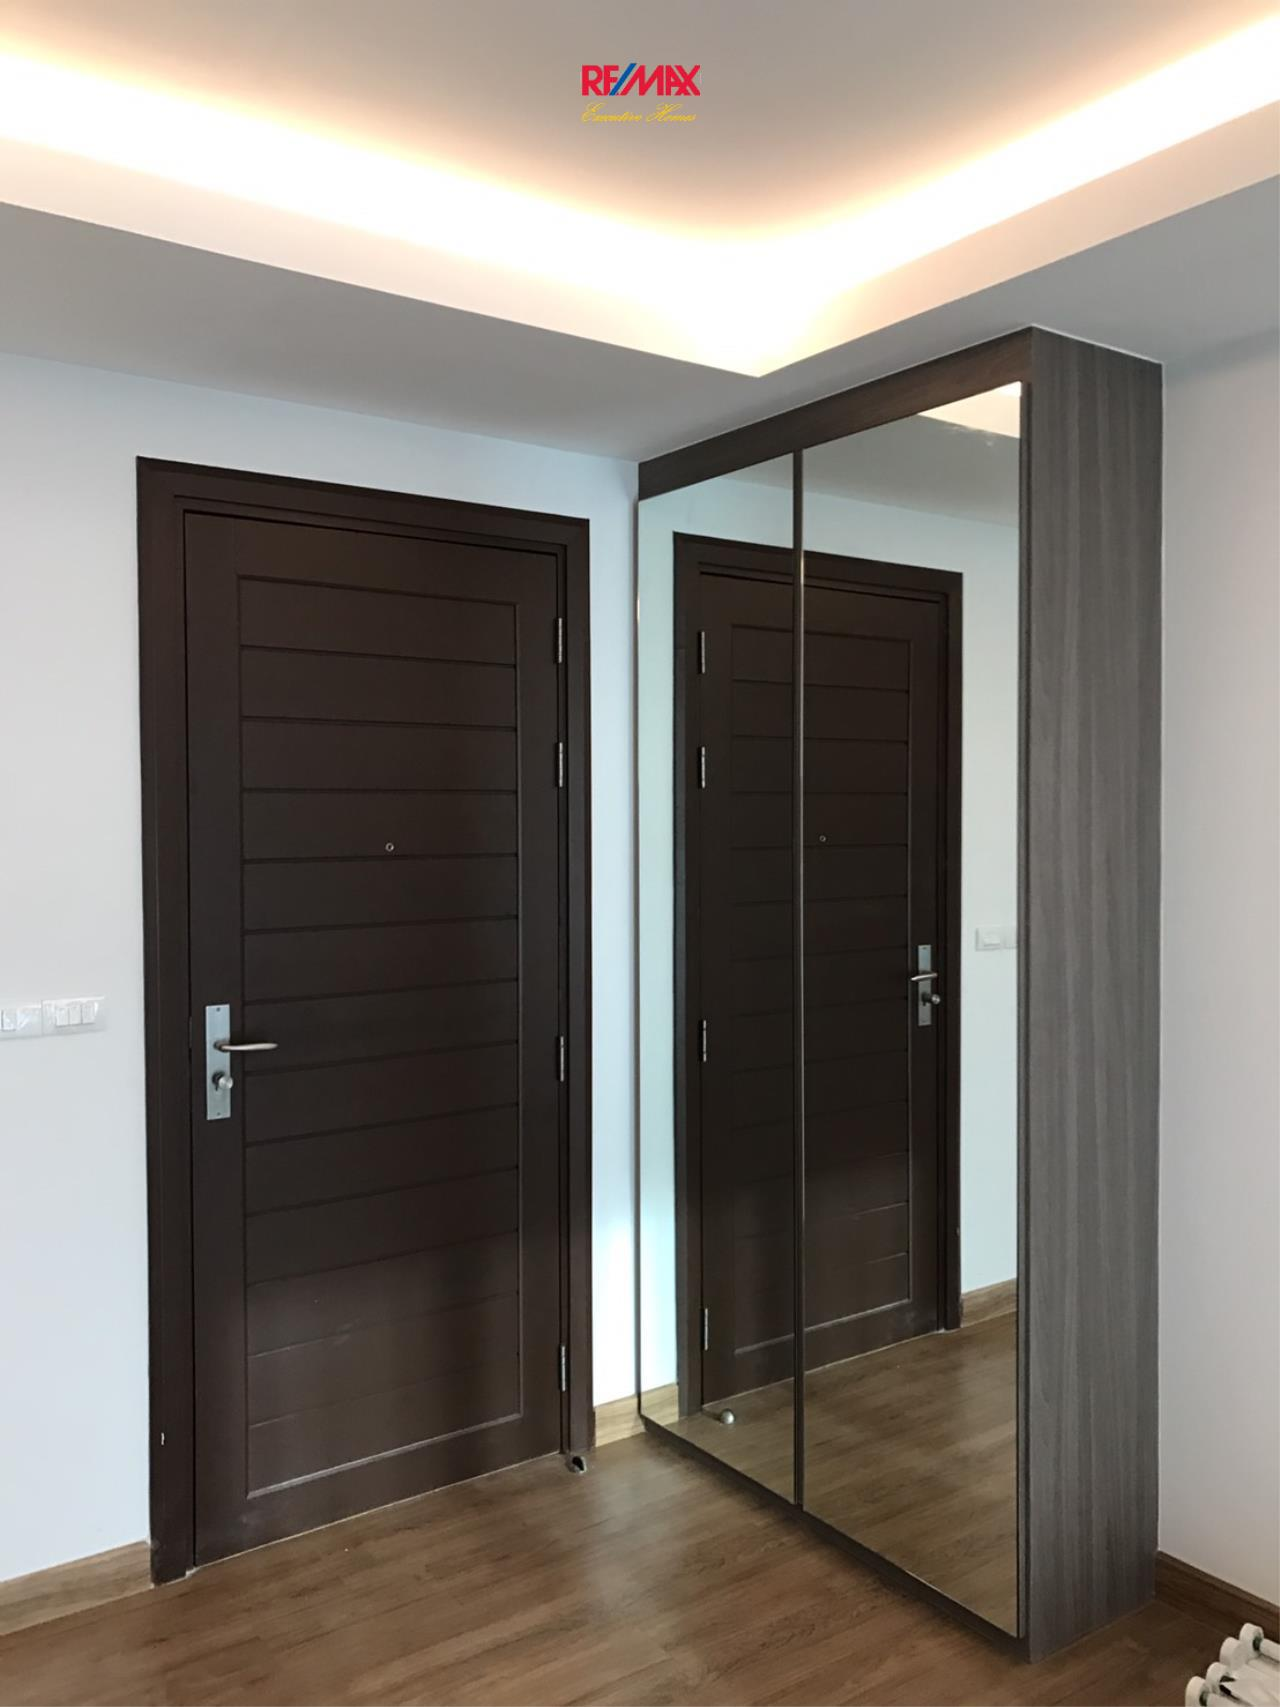 RE/MAX Executive Homes Agency's Nice 2 Bedroom for Sale Thru Thonglor 6